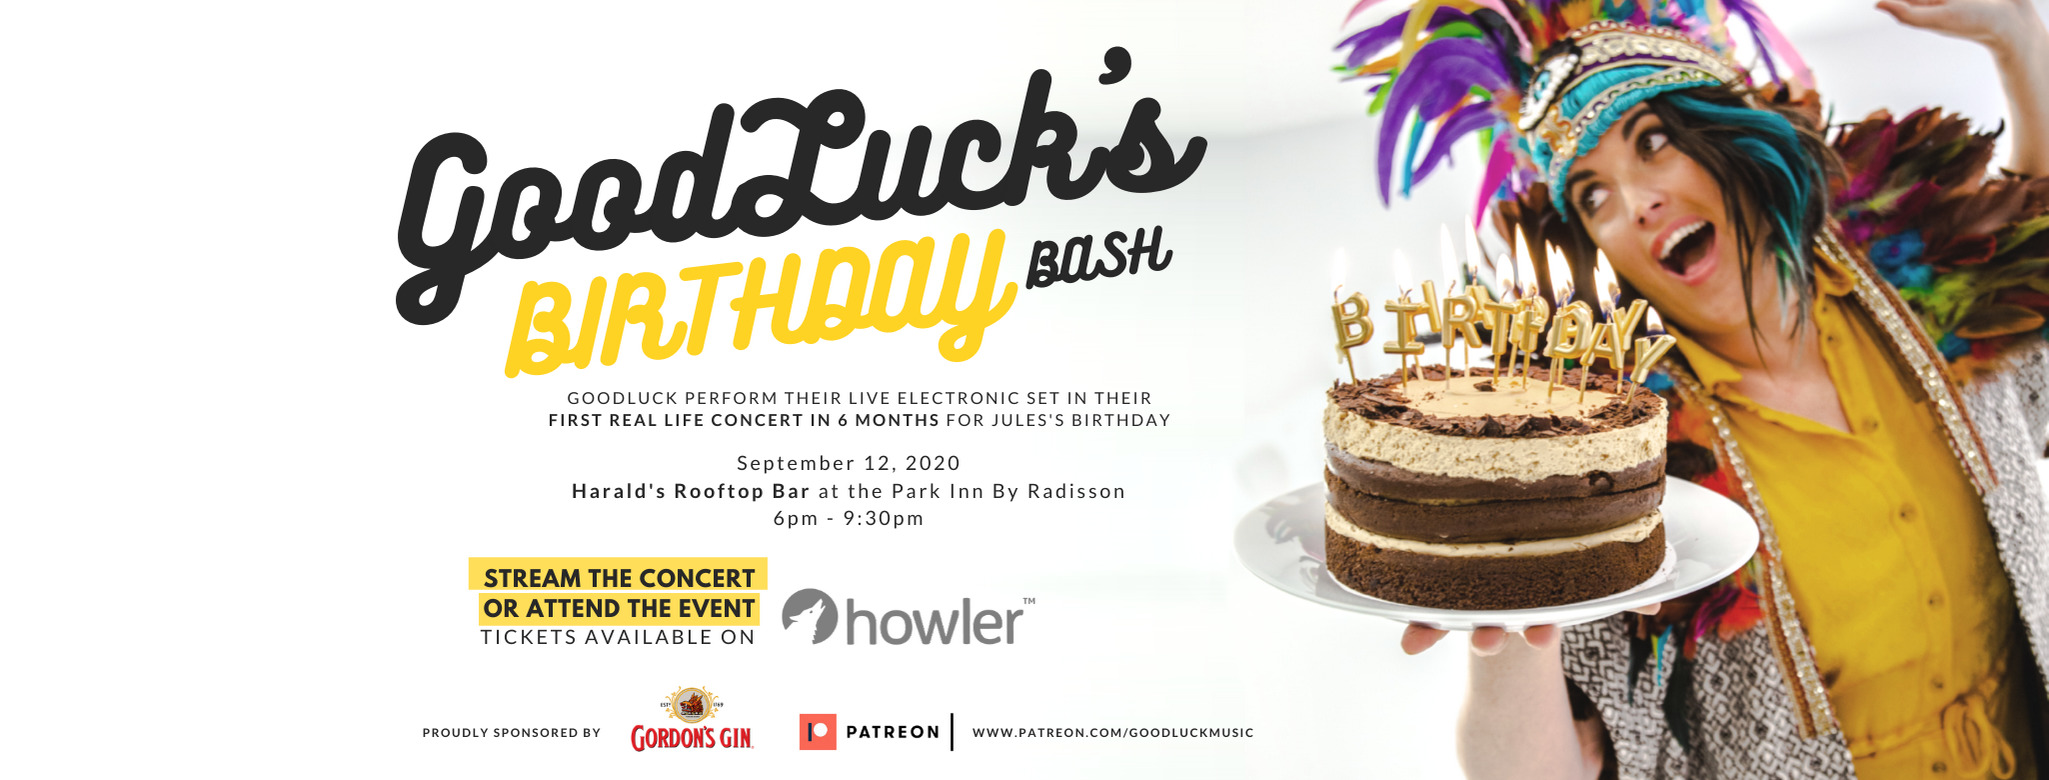 Goodluck's Birthday Bash